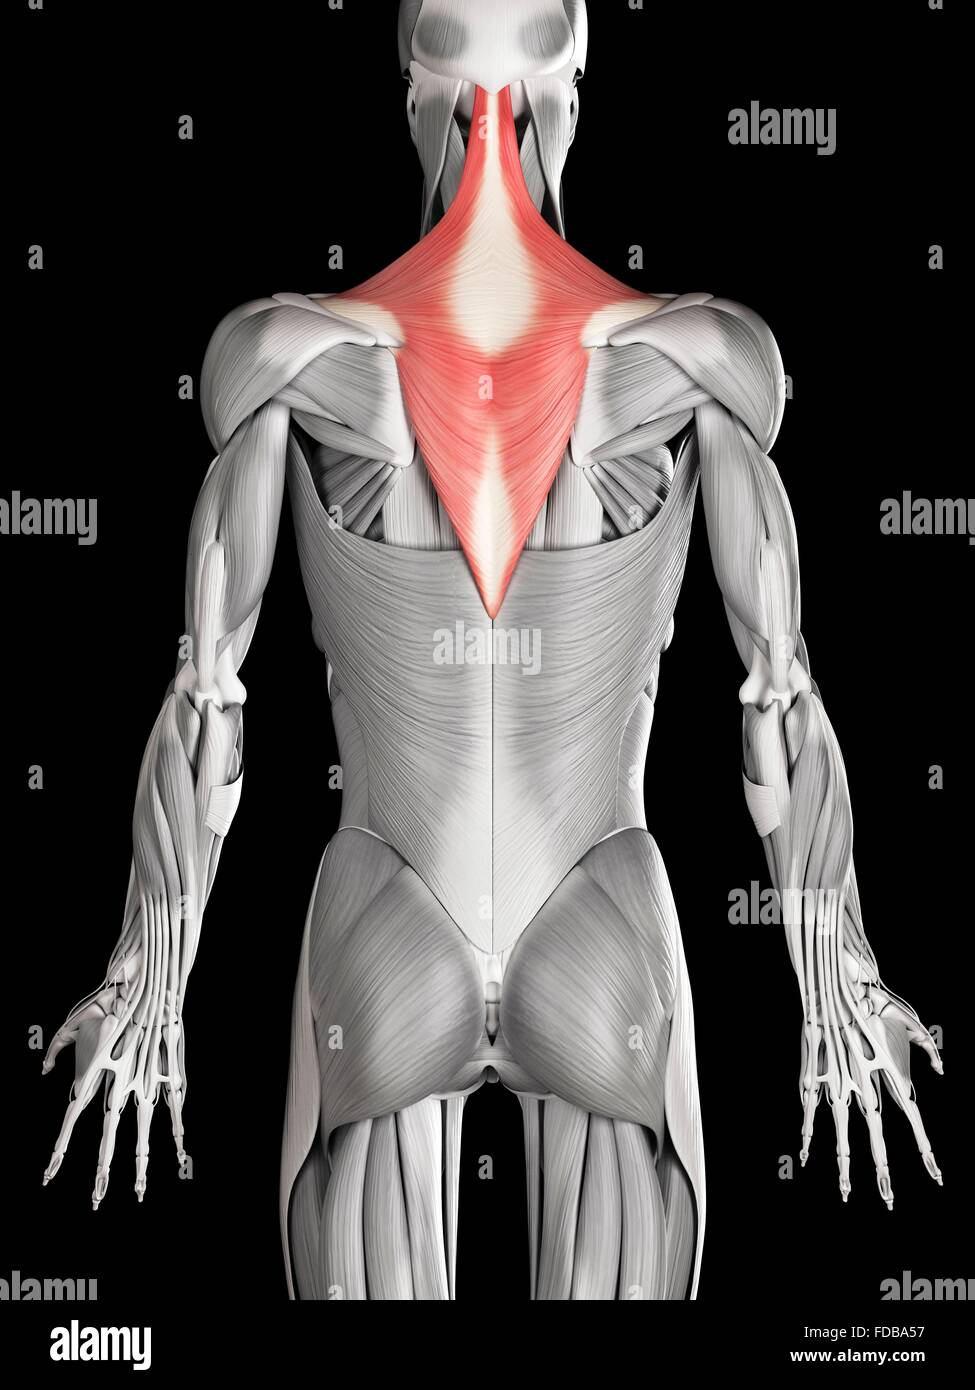 Human Back Neck Muscles Trapezius Stock Photos & Human Back Neck ...